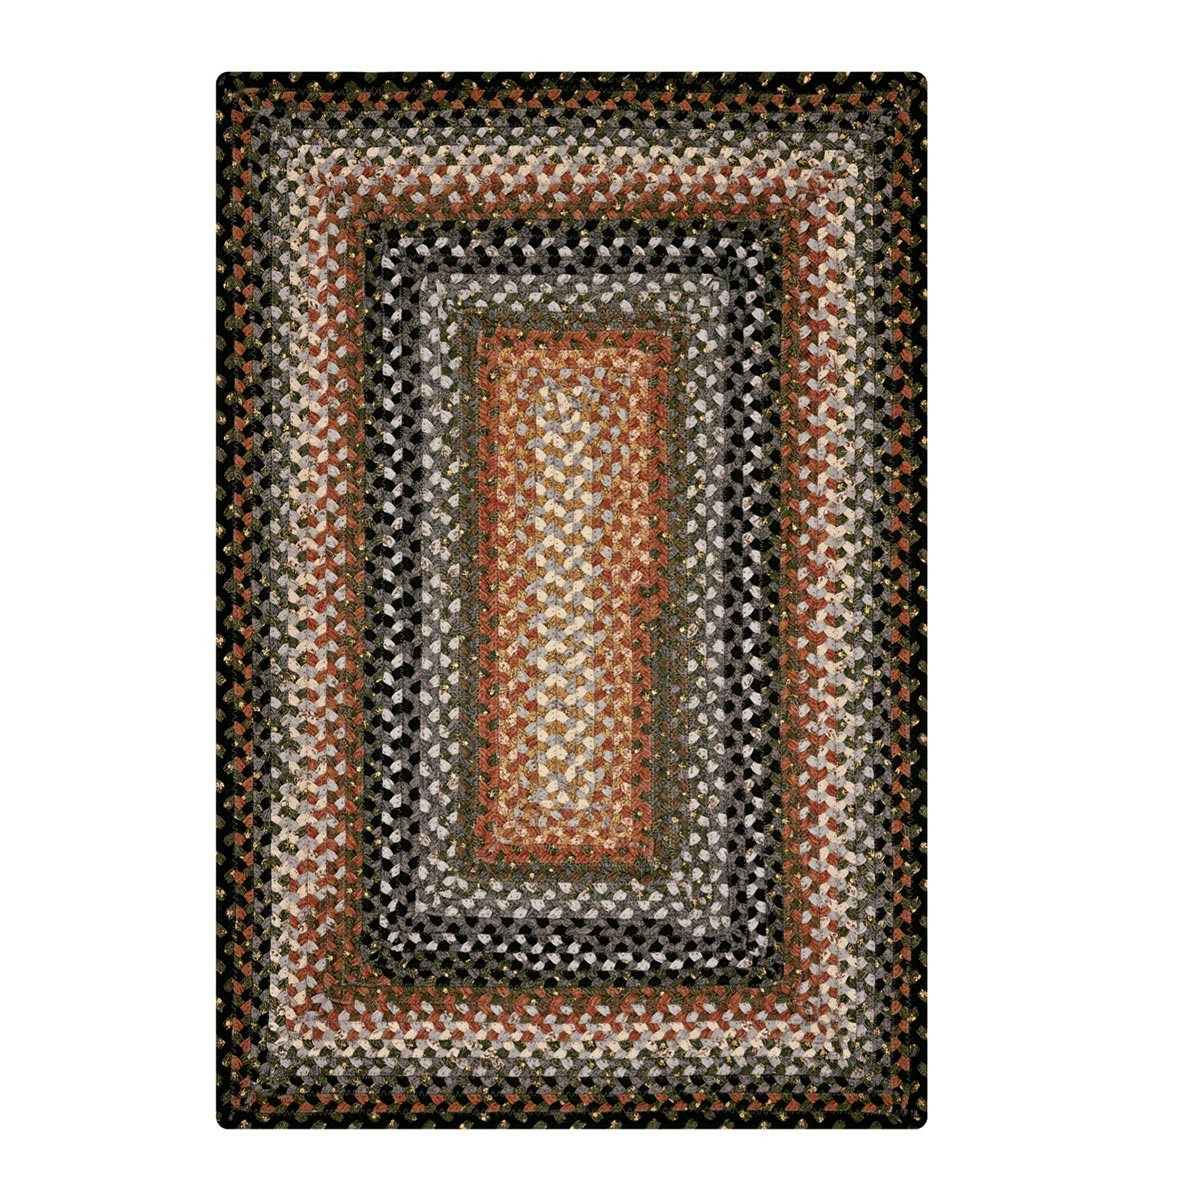 Used Oval Braided Rugs: Grey Cotton Braided Rugs Online